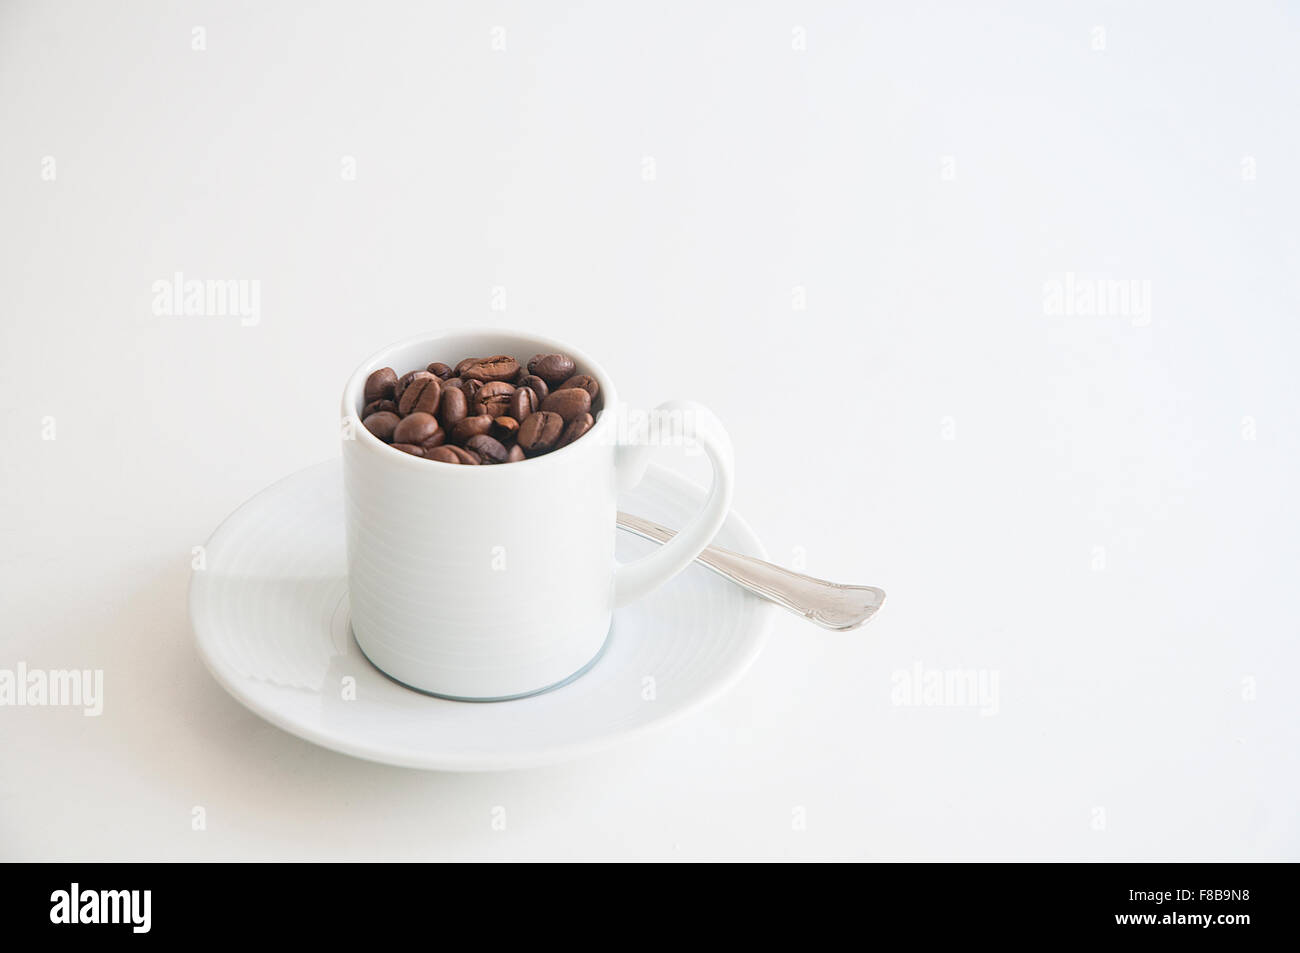 Cup with coffee beans. - Stock Image